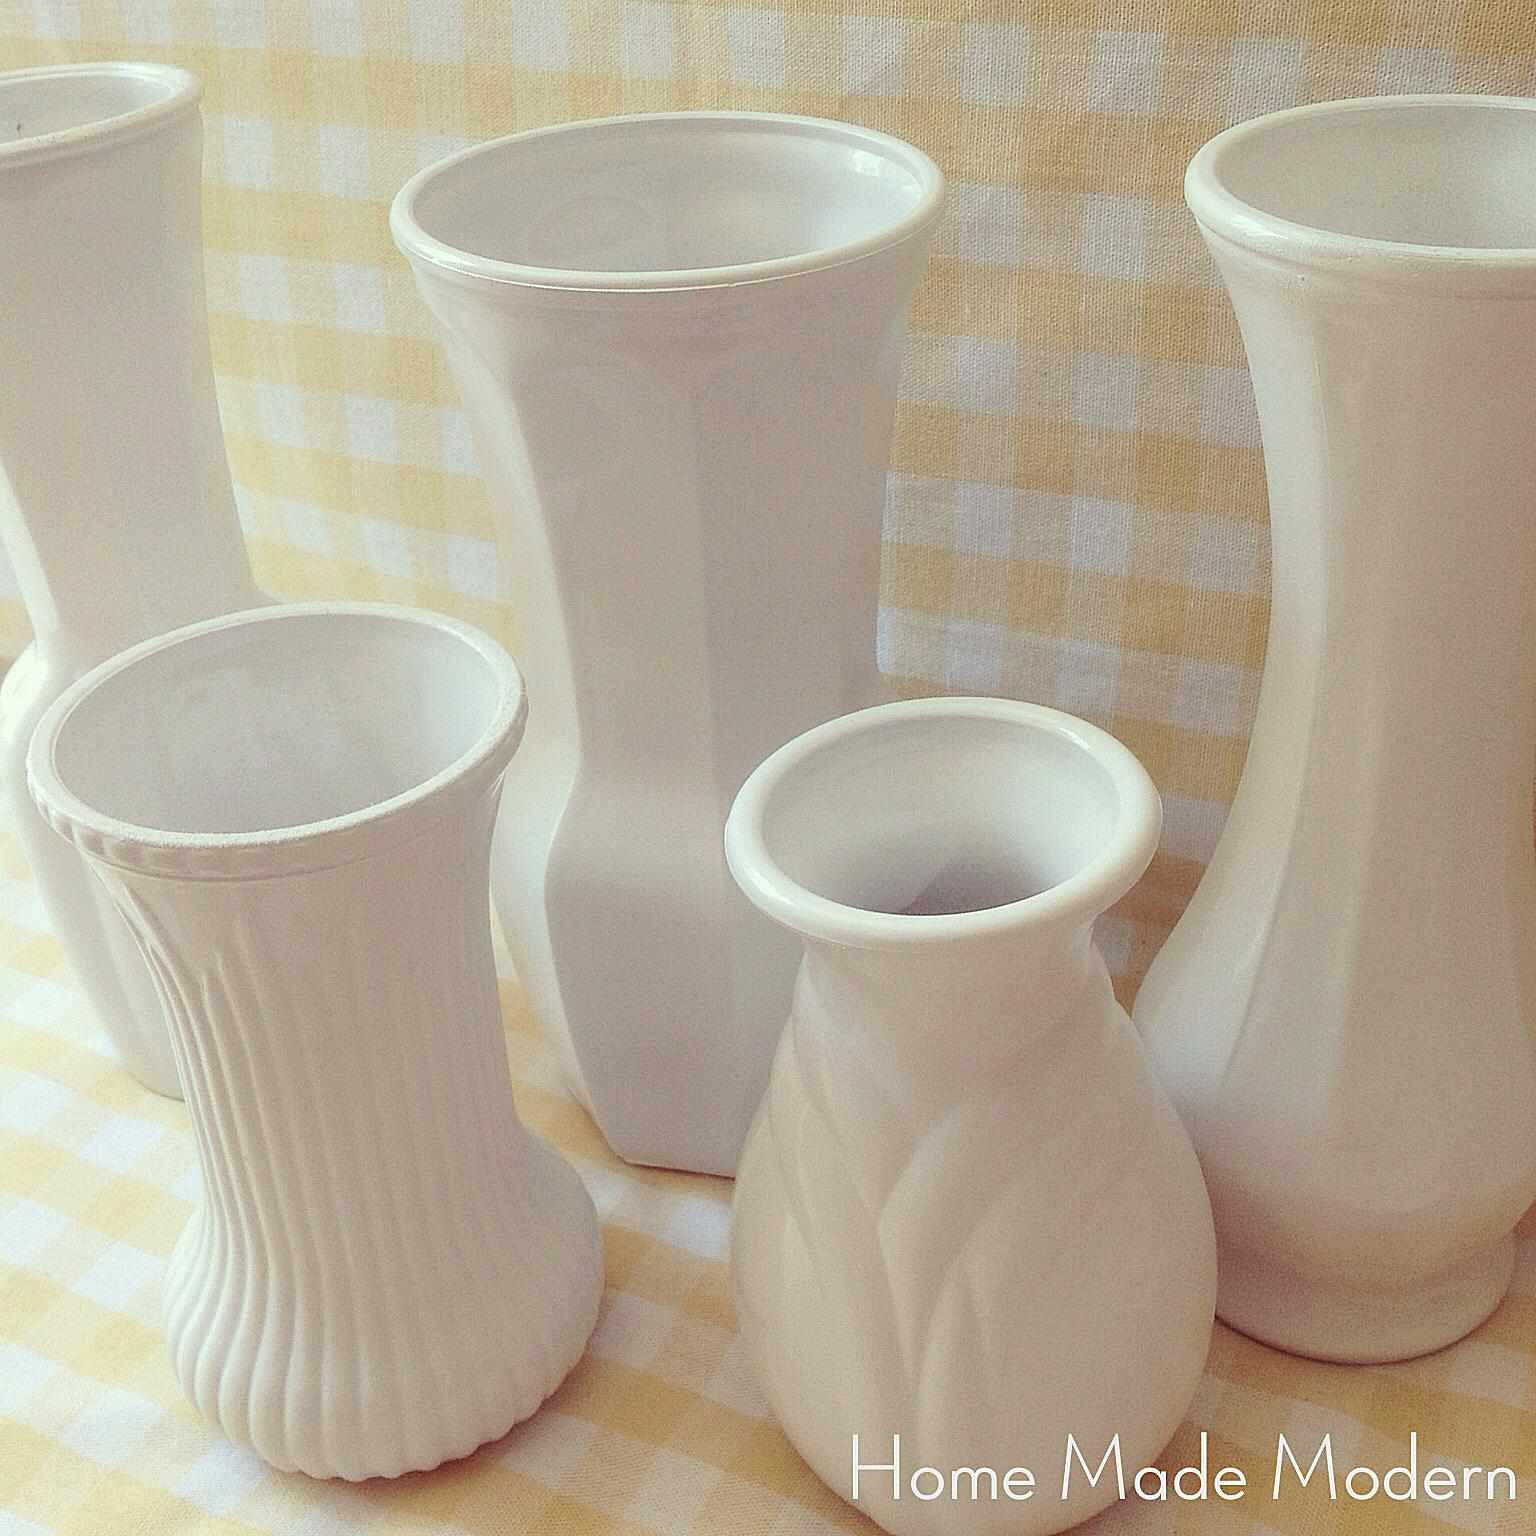 marshalls home goods vases of 12 things you shouldnt throw away with upcycled florist vases home made moder